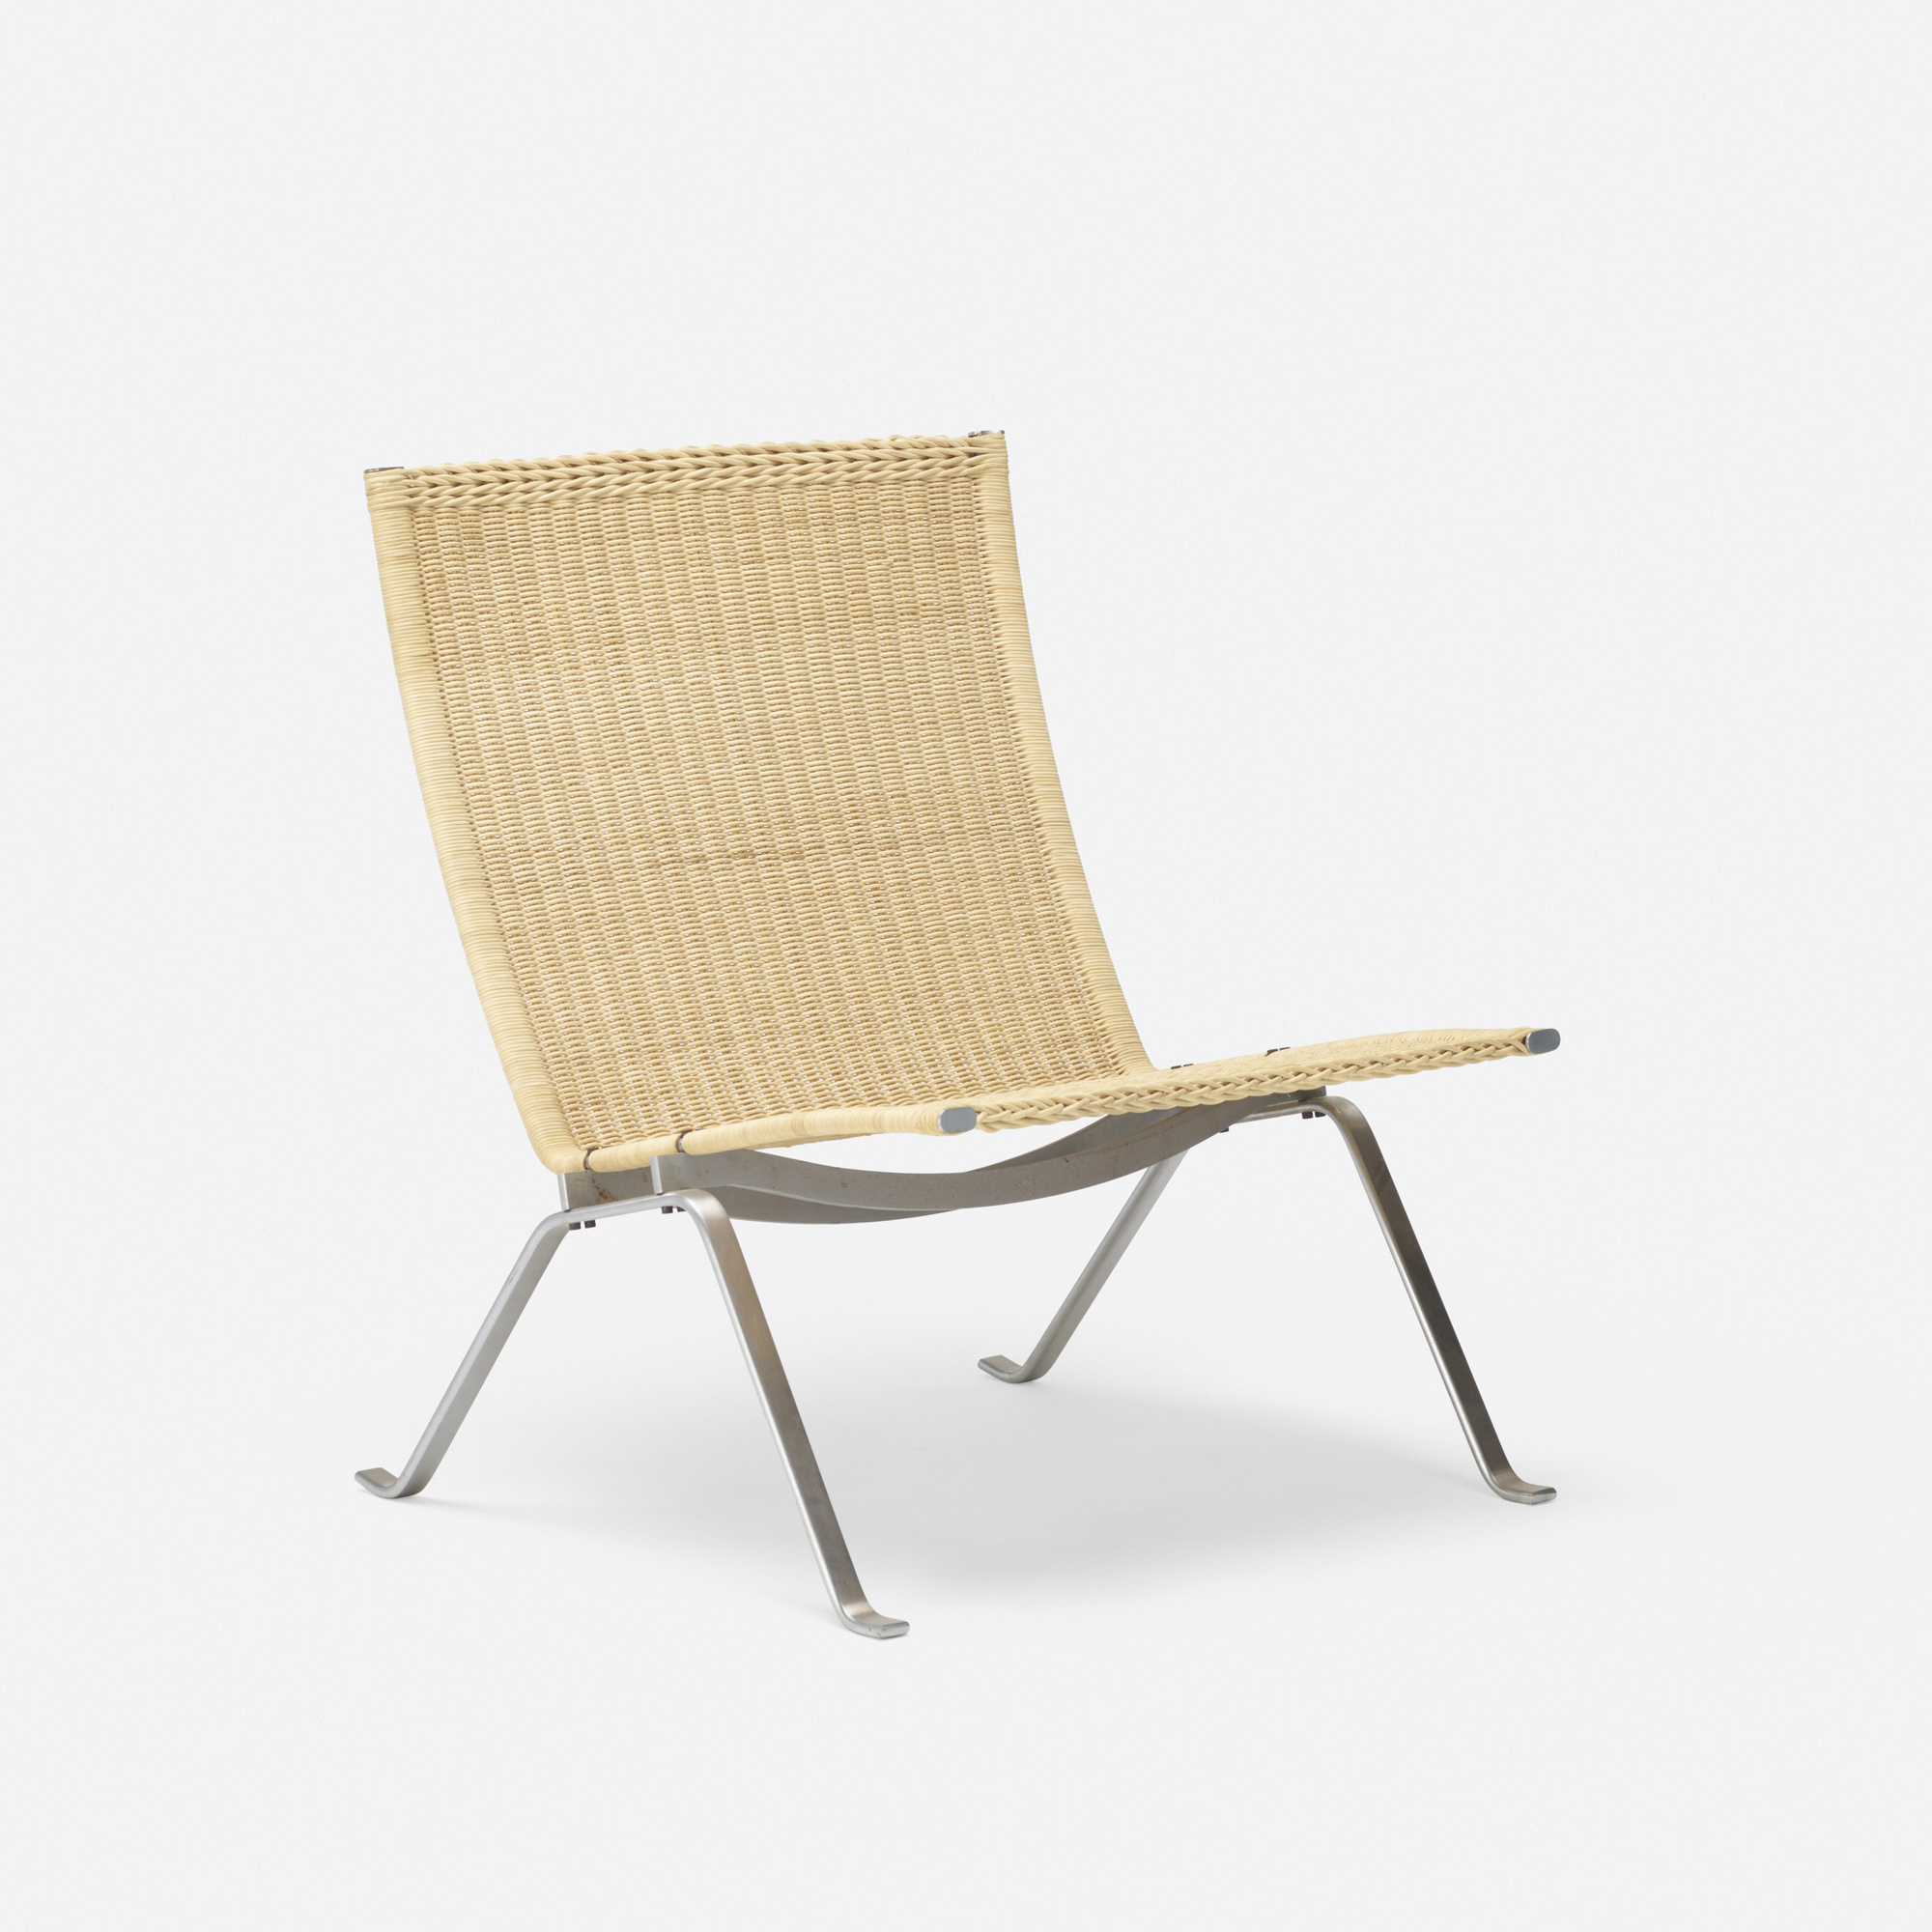 388: Poul Kjaerholm / PK 22 chair and additional chair components (1 of 3)